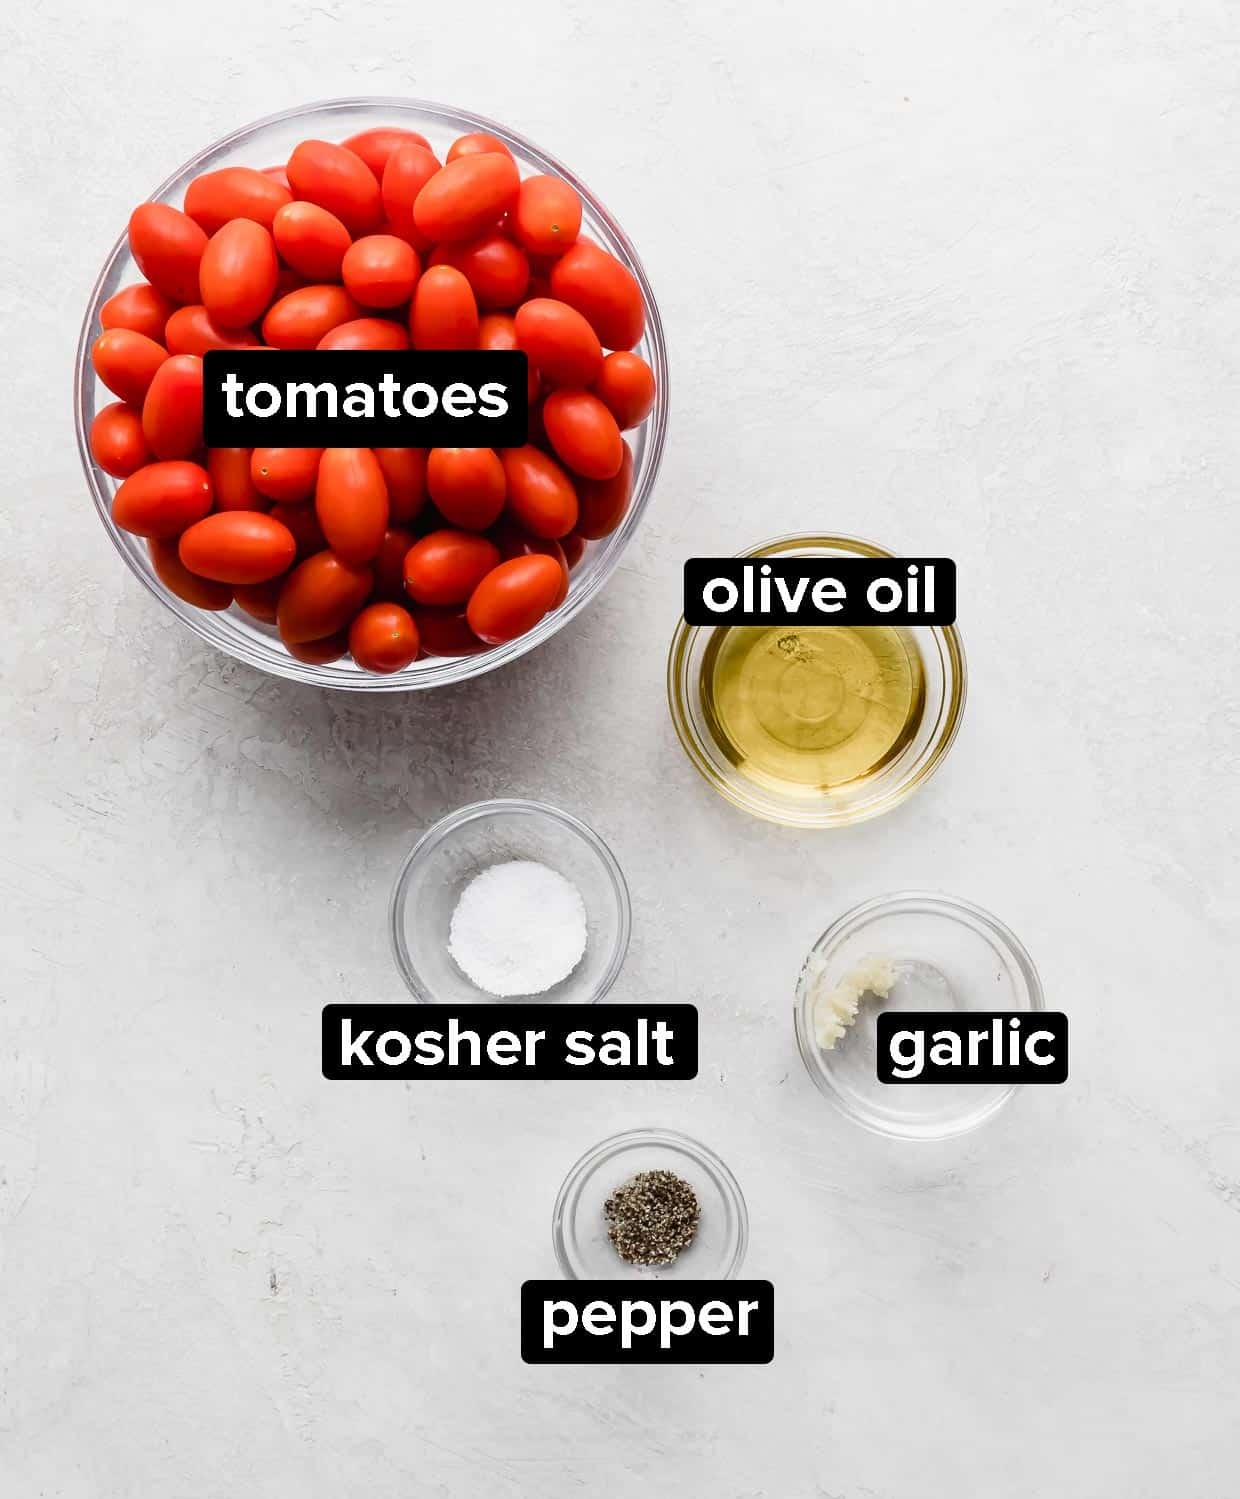 Ingredients used to make roasted tomatoes, on a gray background.